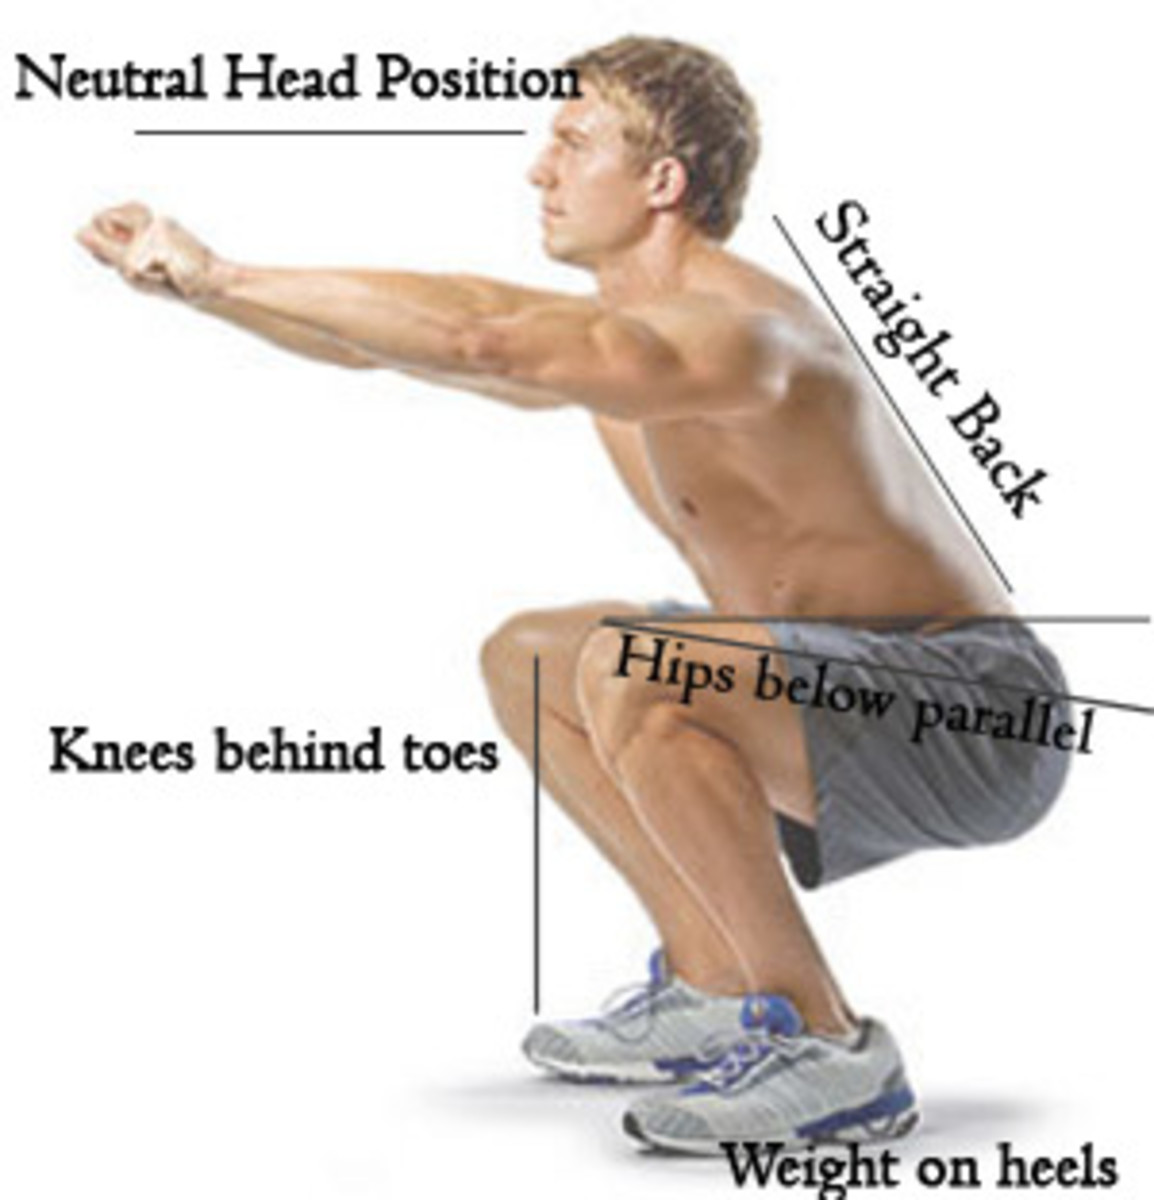 diagram of the proper form of the squat exercise with a man and labels detailing Knees, back and neutral head and weight on heels